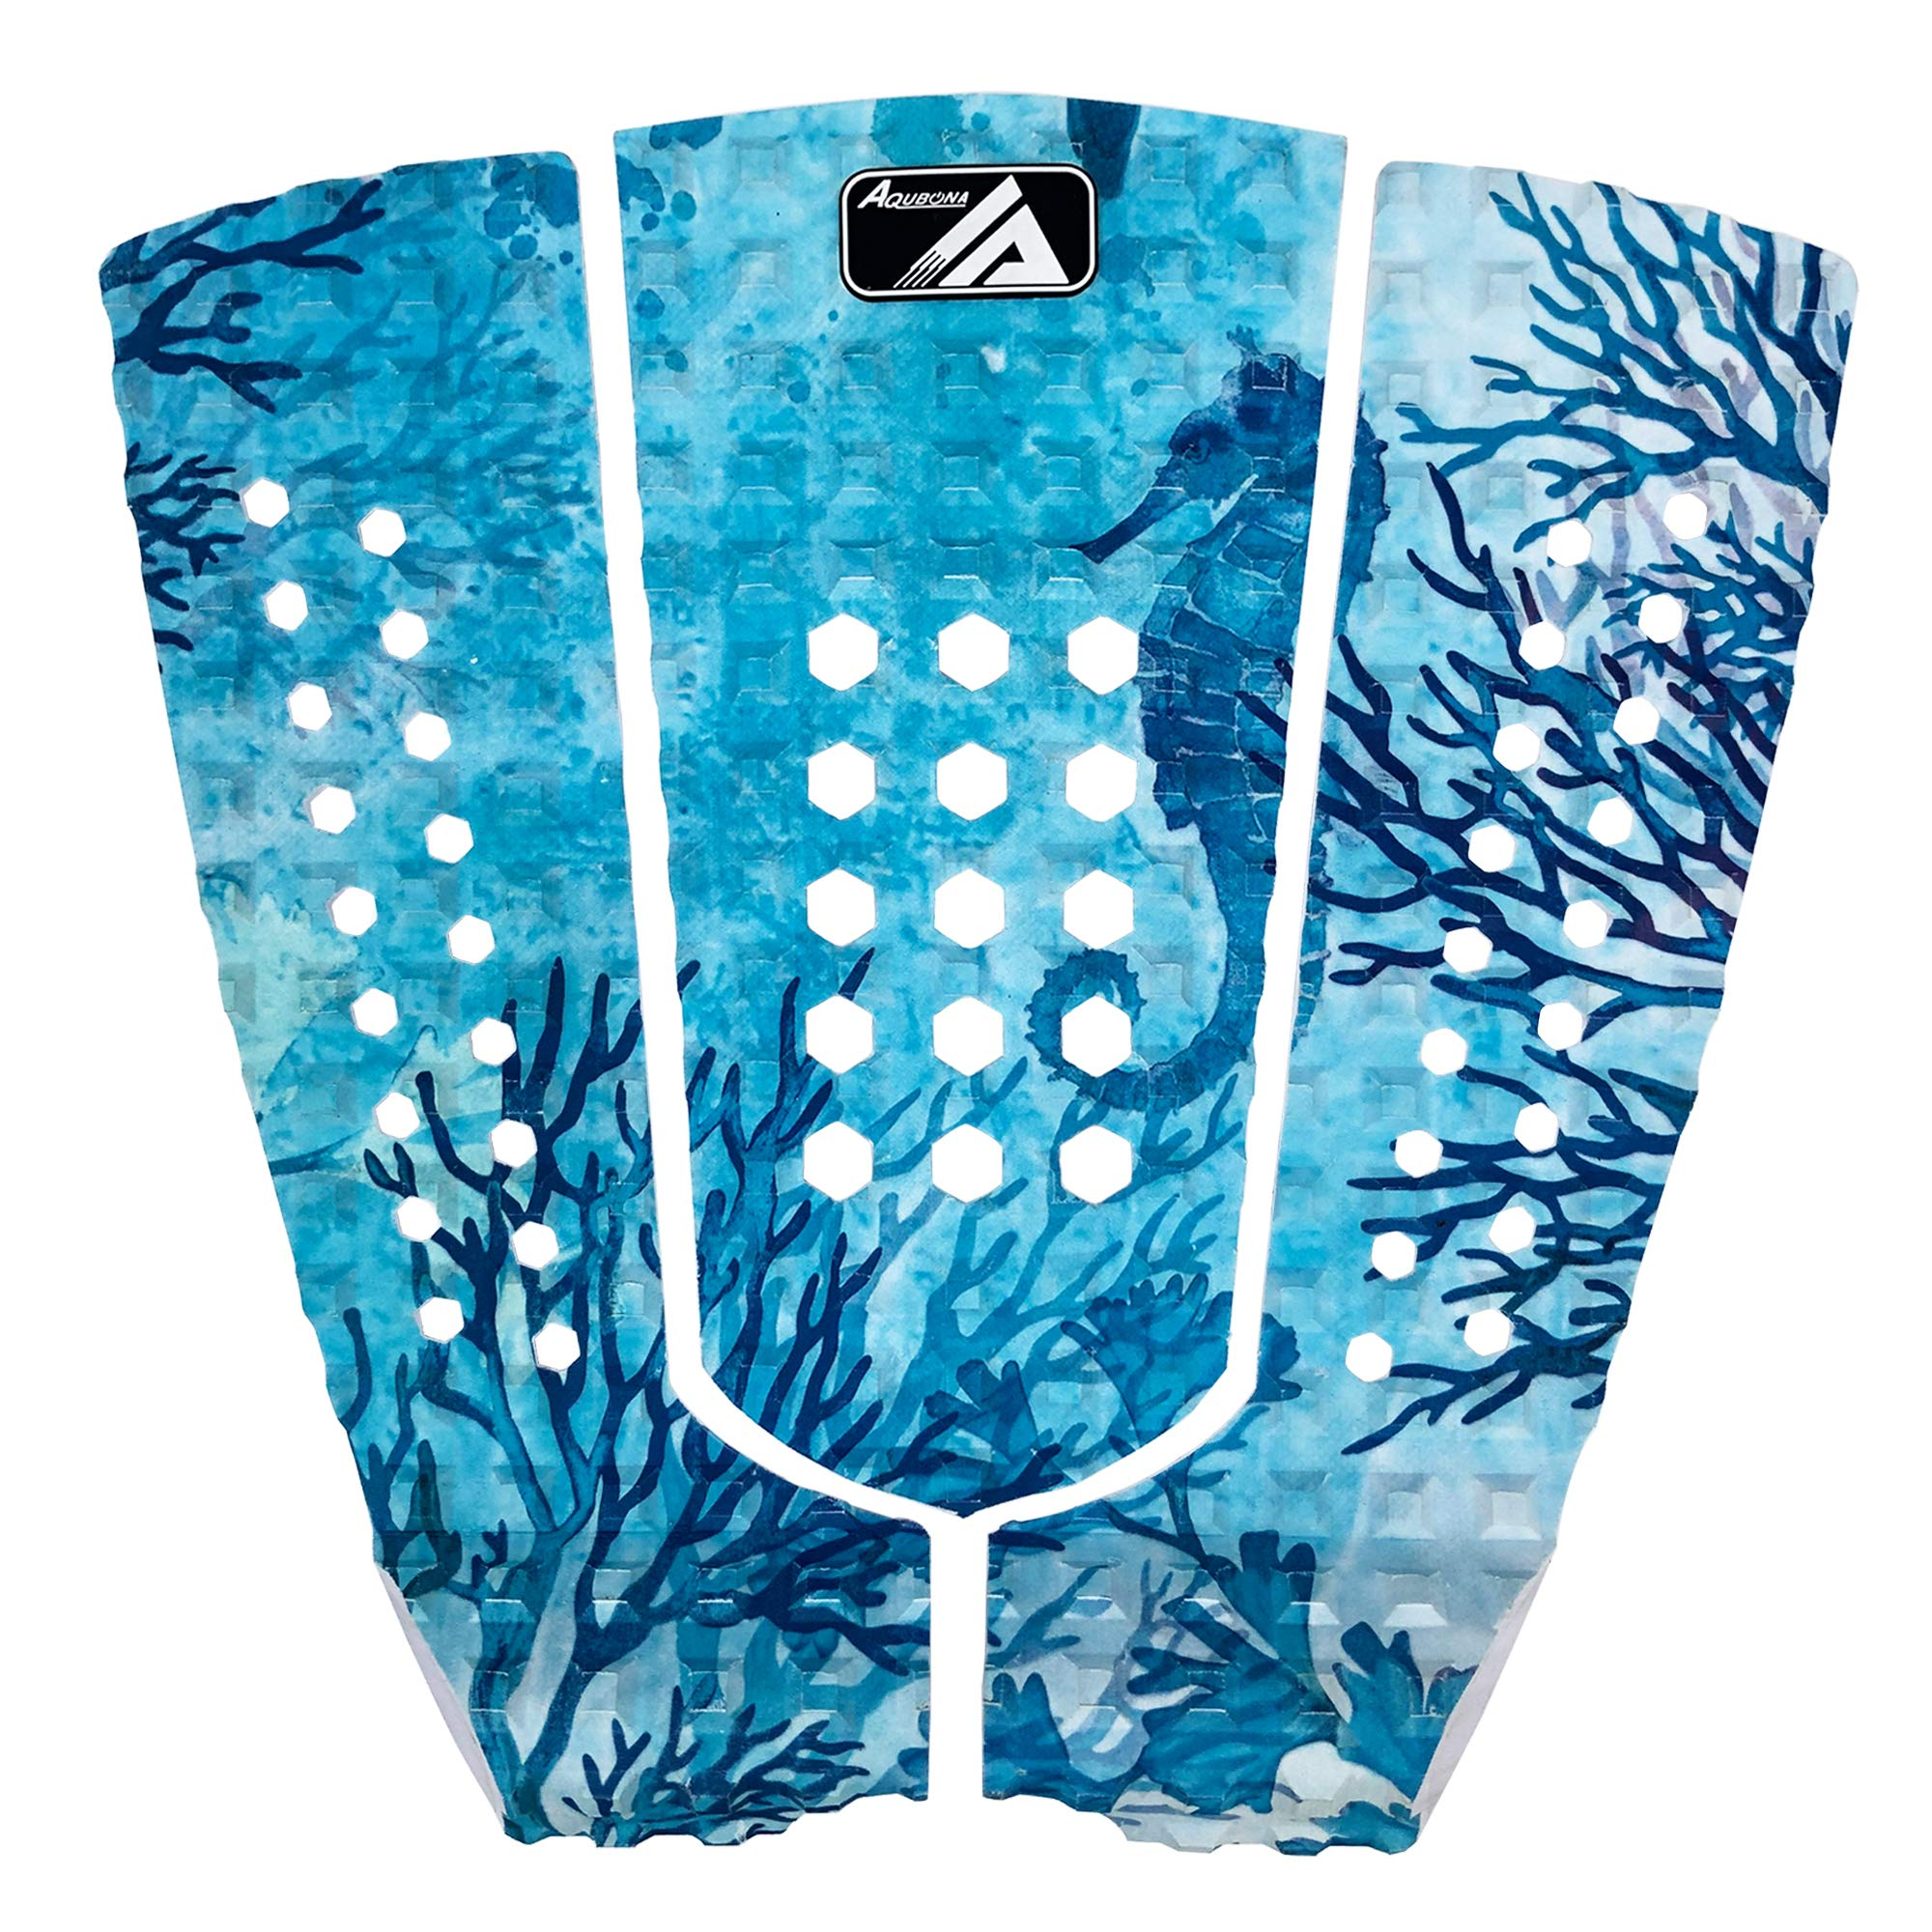 Surfboards 3 Piece Stomp Pad Surfboard EVA Traction Pad with 3M Adhesive Professional Tail Pad//Applies All Boards Shortboards Longboards Skimboards//Multiple Color Choices